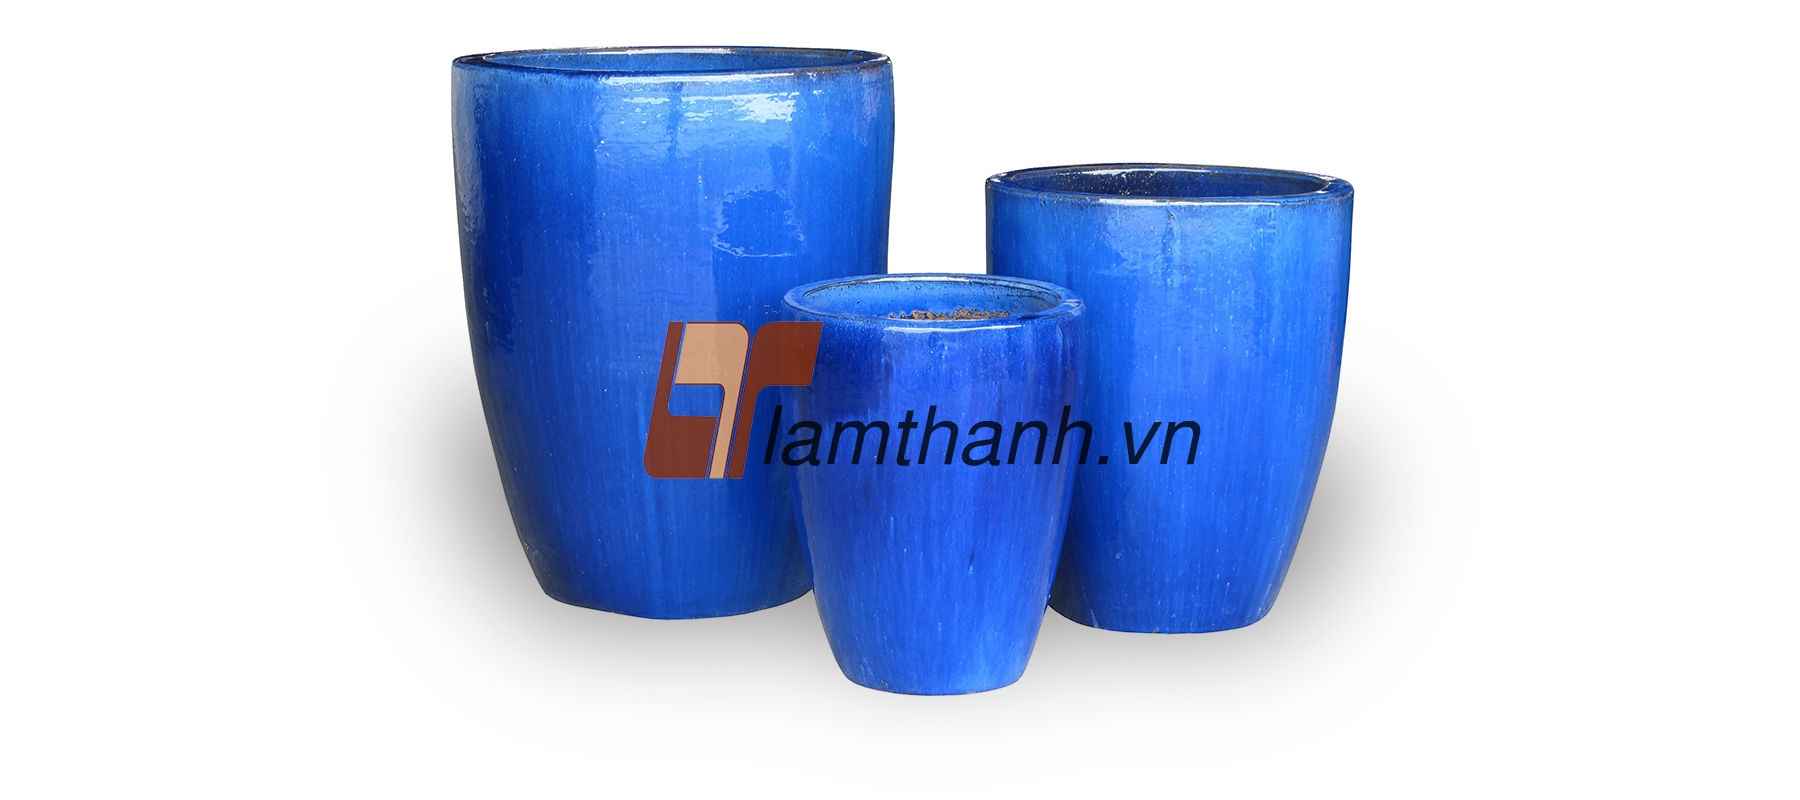 vietnam ceramic, outdoor glazed09